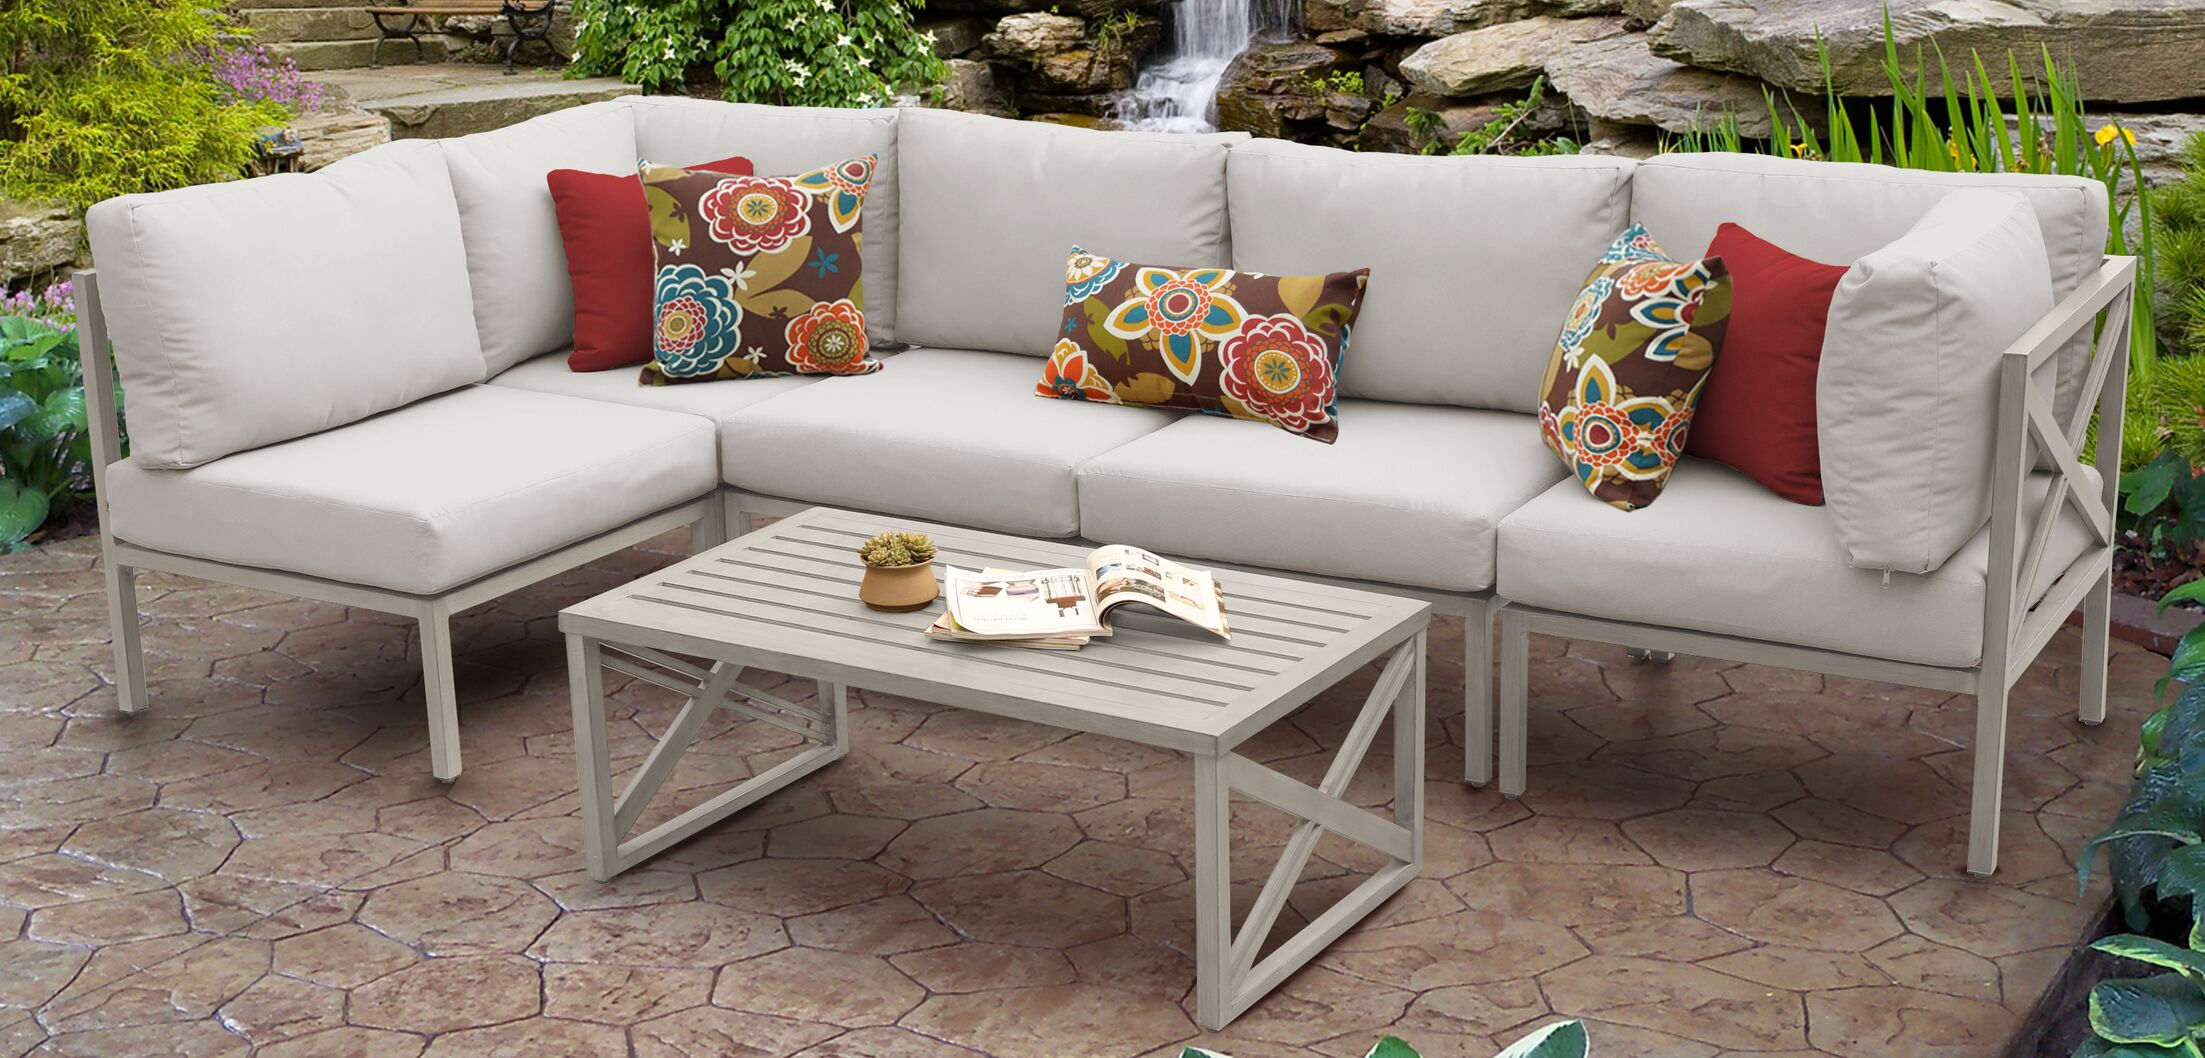 Carlisle 6 Piece Outdoor Sectional Set with Cushions Cushion Color: Beige